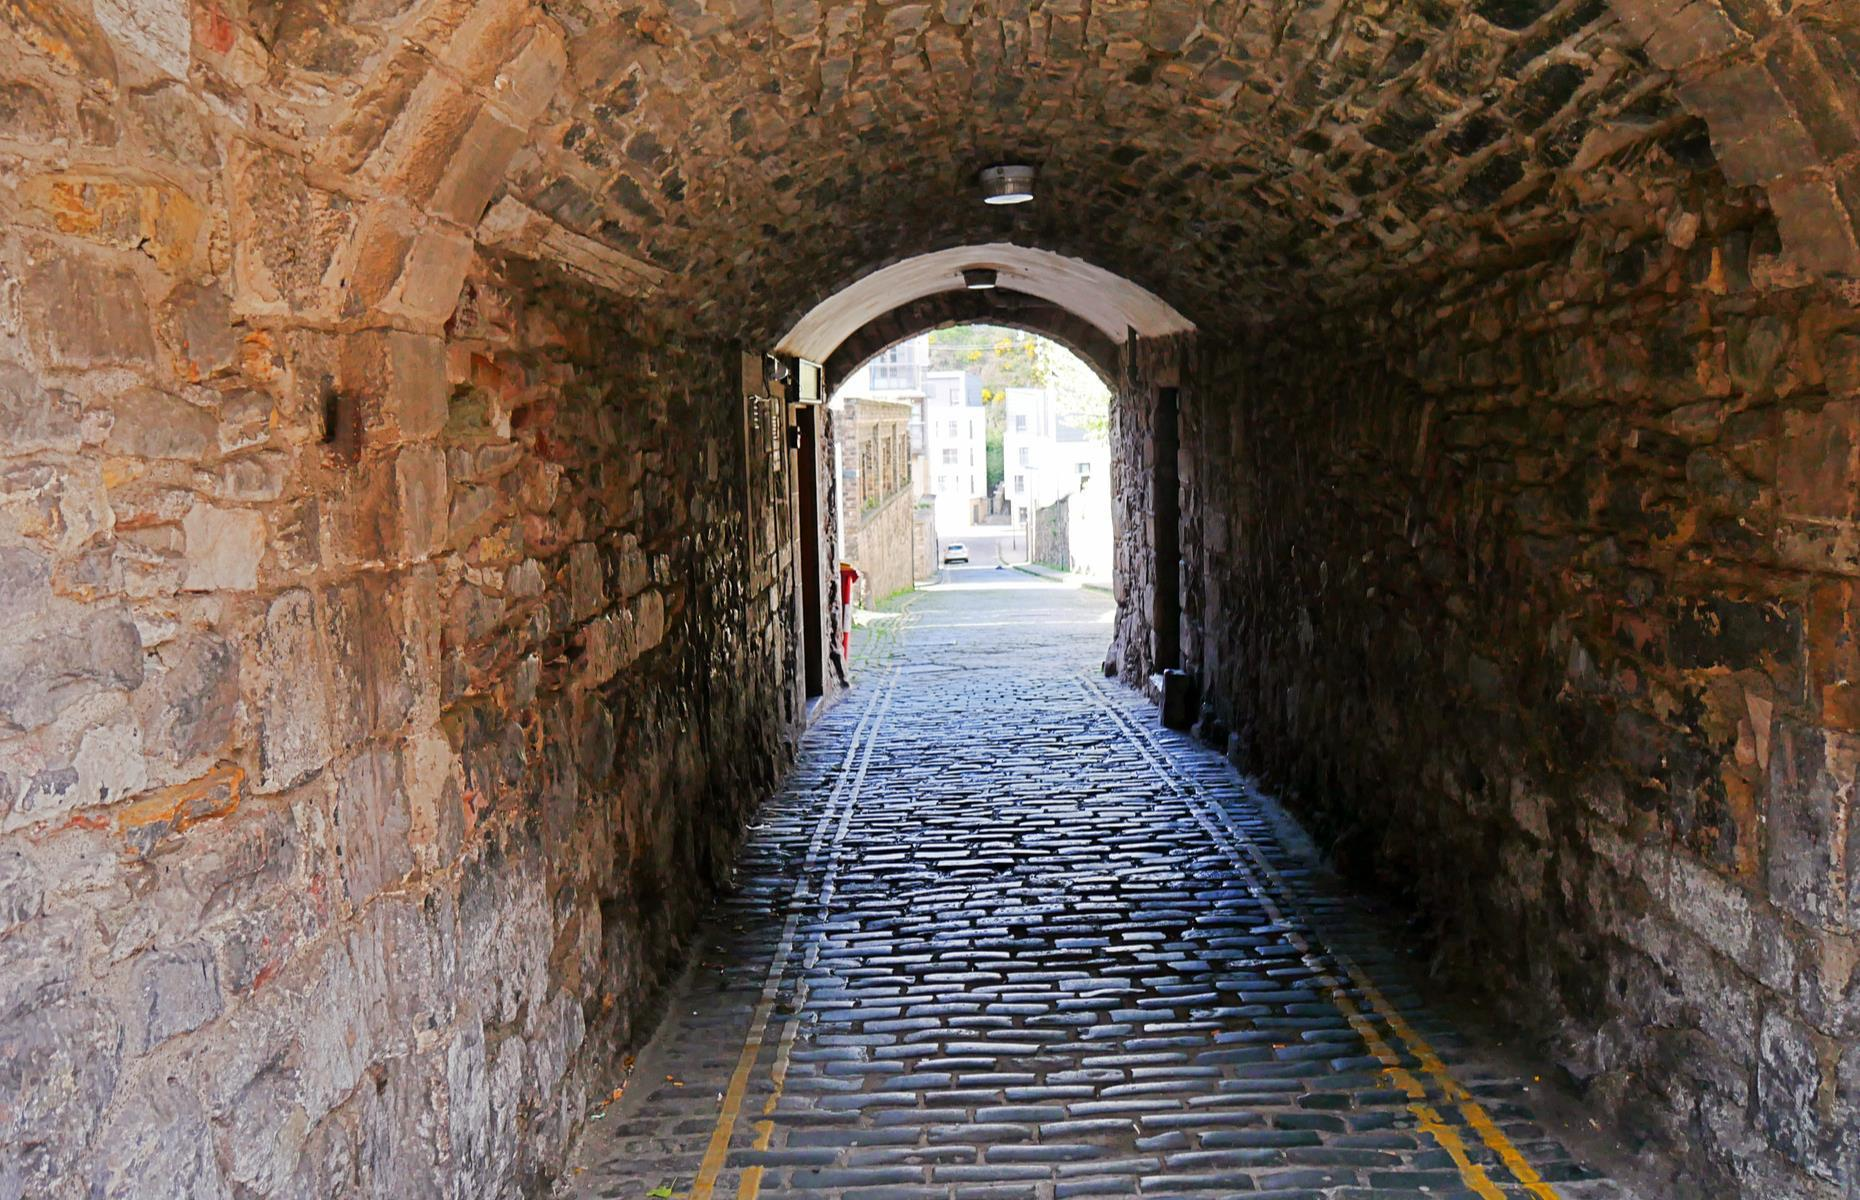 Slide 33 of 45: A number of the castle's hidden secrets relate to its military past and present. For example there's a network of tunnels and caves below Edinburgh whose purpose is shrouded in legends and stories. One tunnel constructed in the 1980s allows military vehicles to enter the castle without disrupting tourist visits.